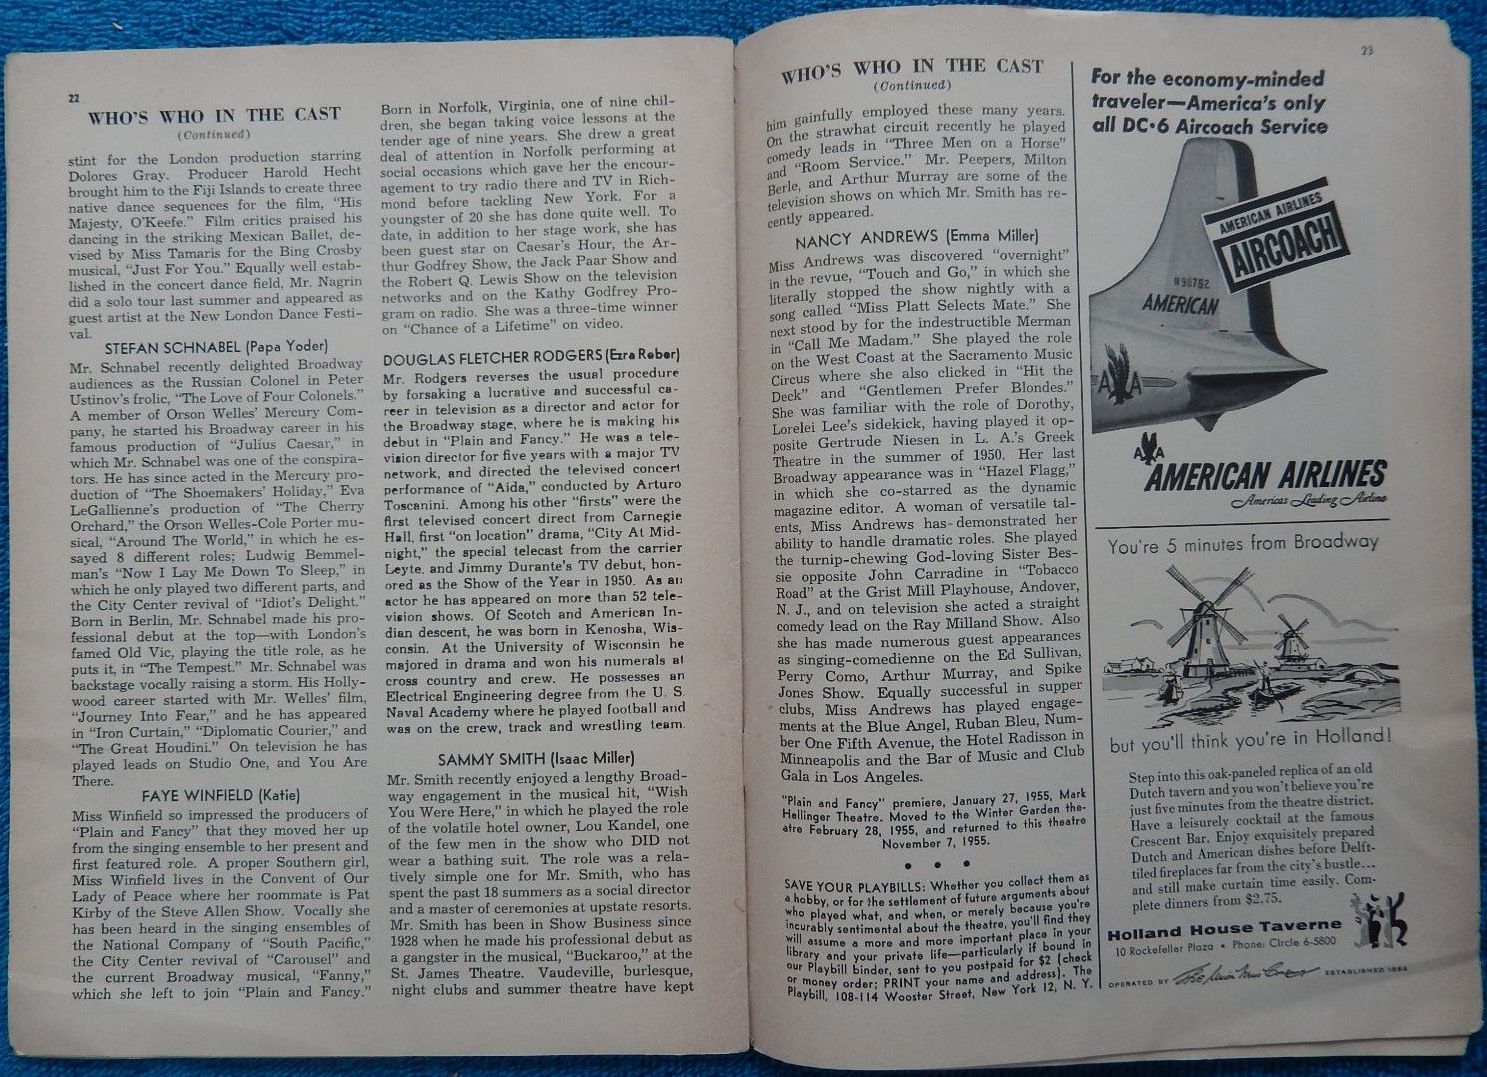 Plain and Fancy Playbill Pages 22-23